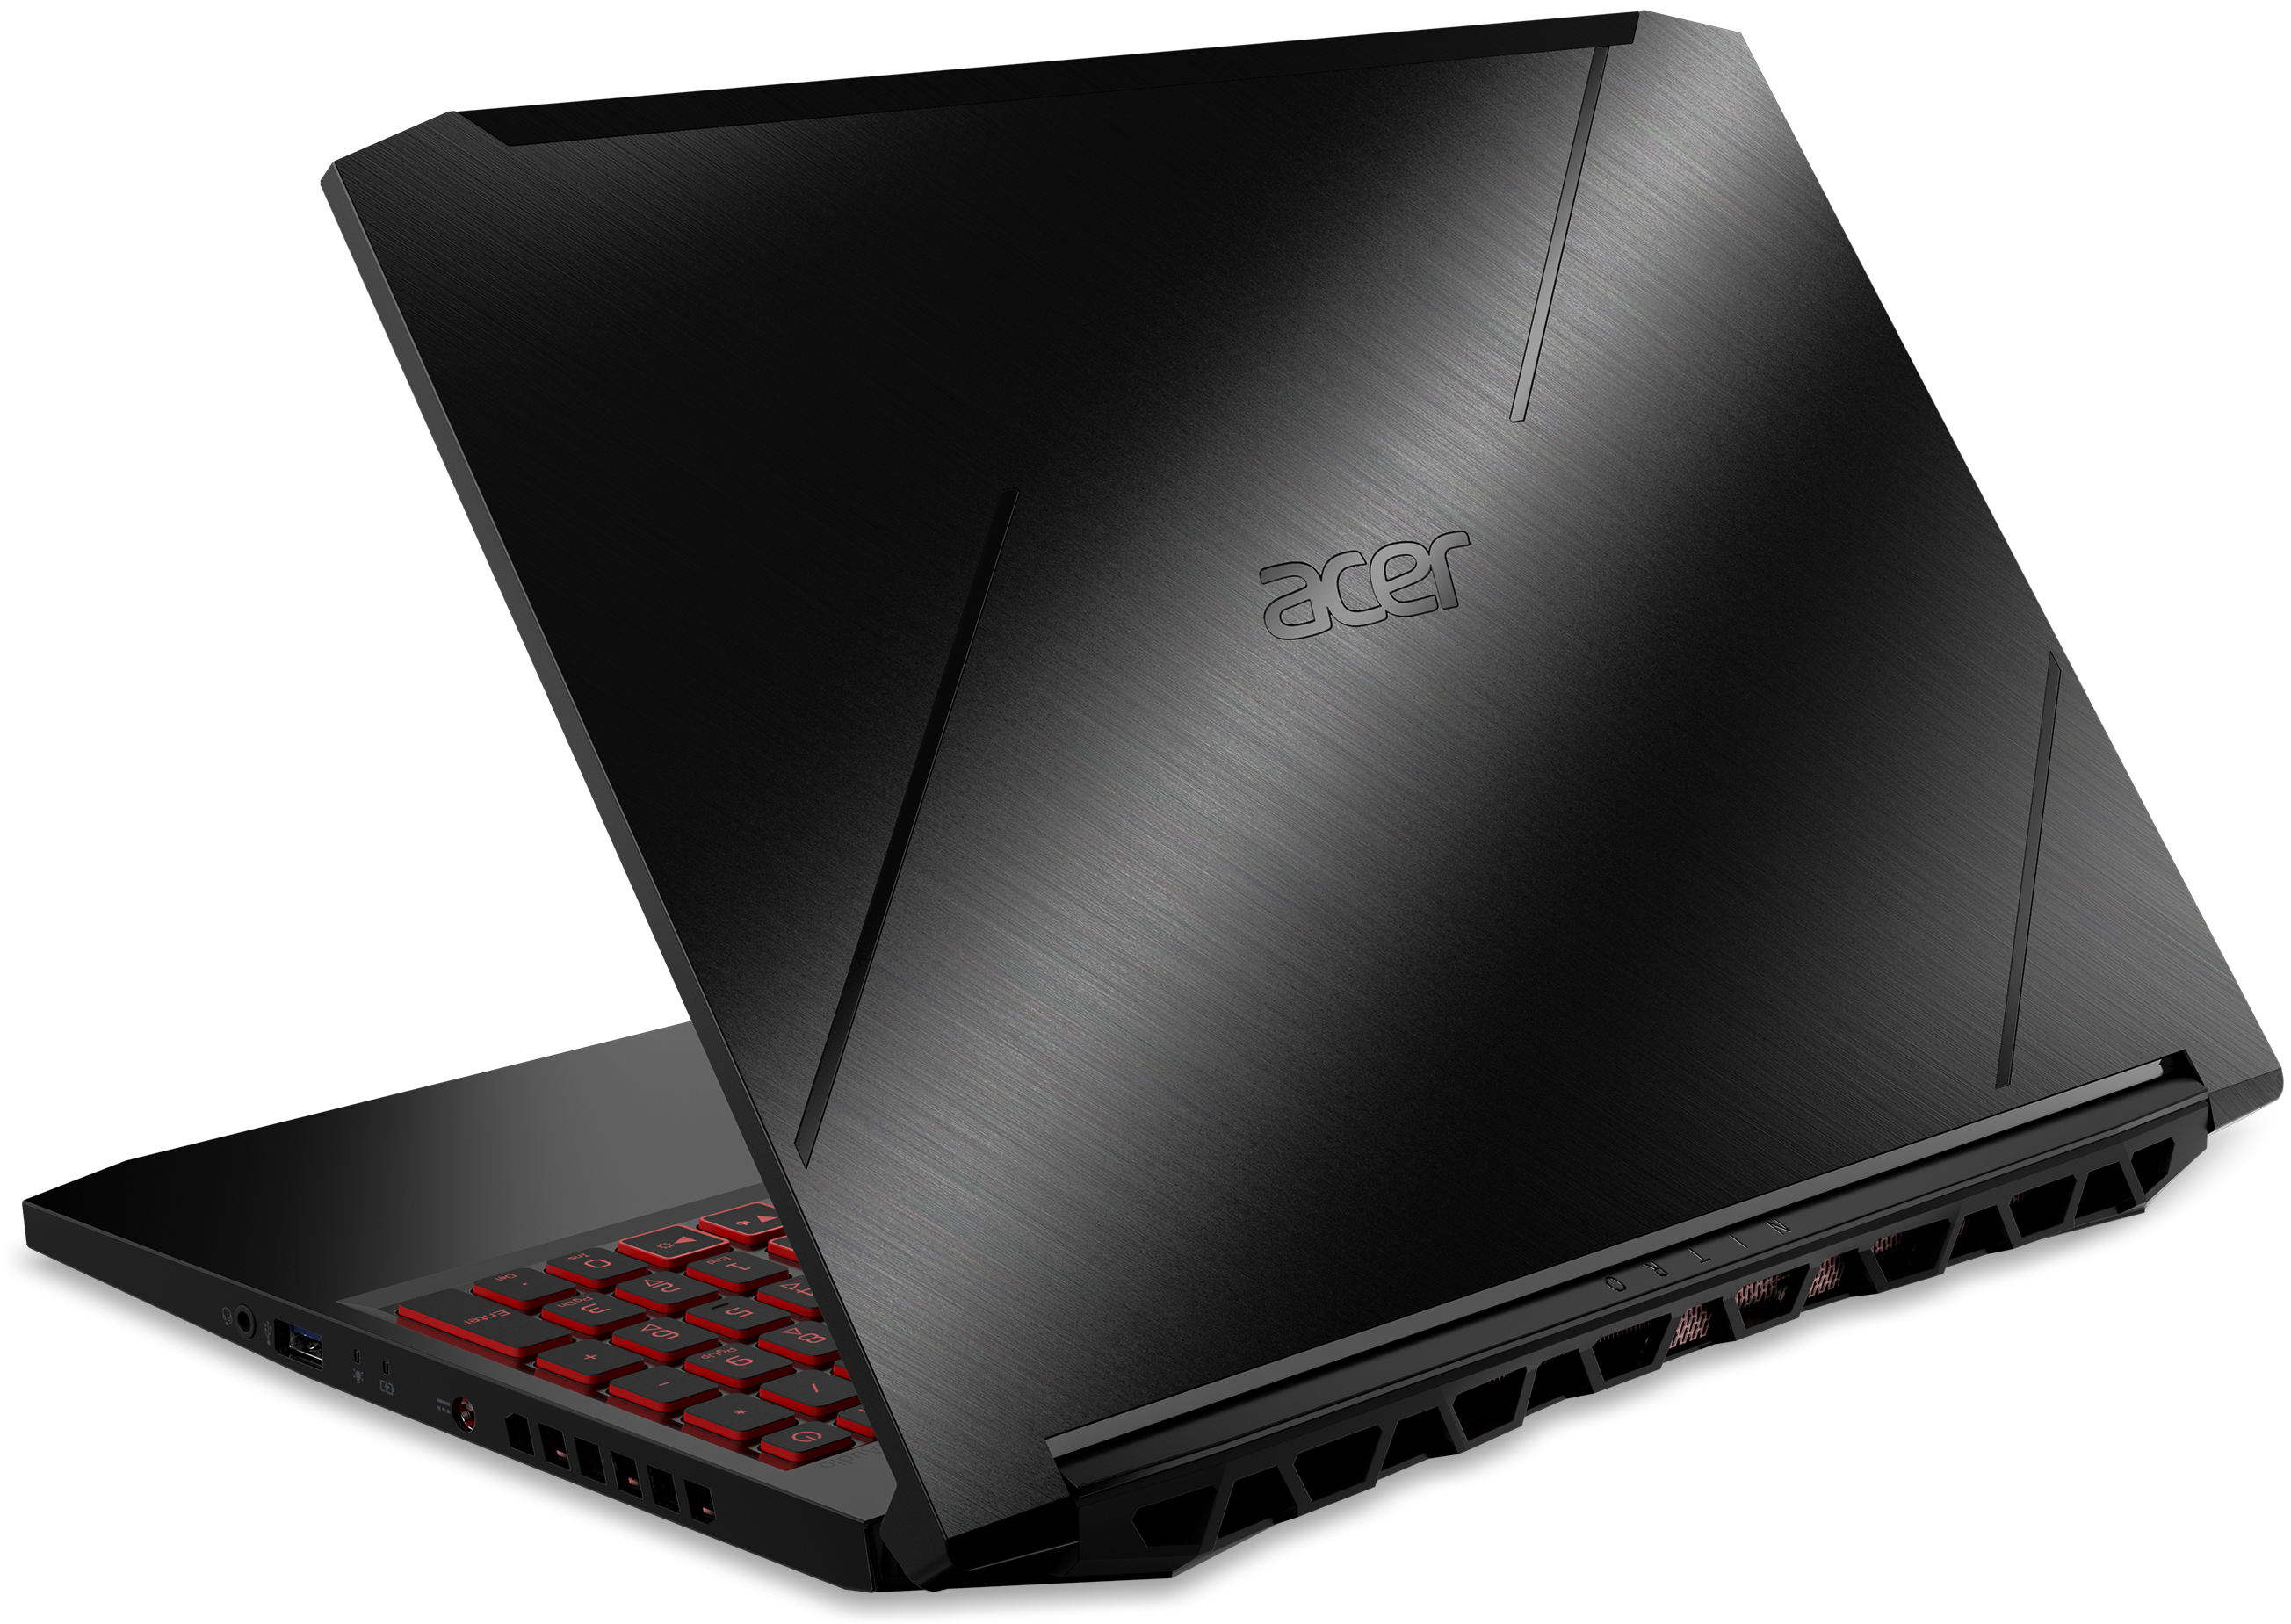 Acer Nitro 7: Thin 15 6-Inch Gaming Laptops with 144 Hz Monitors